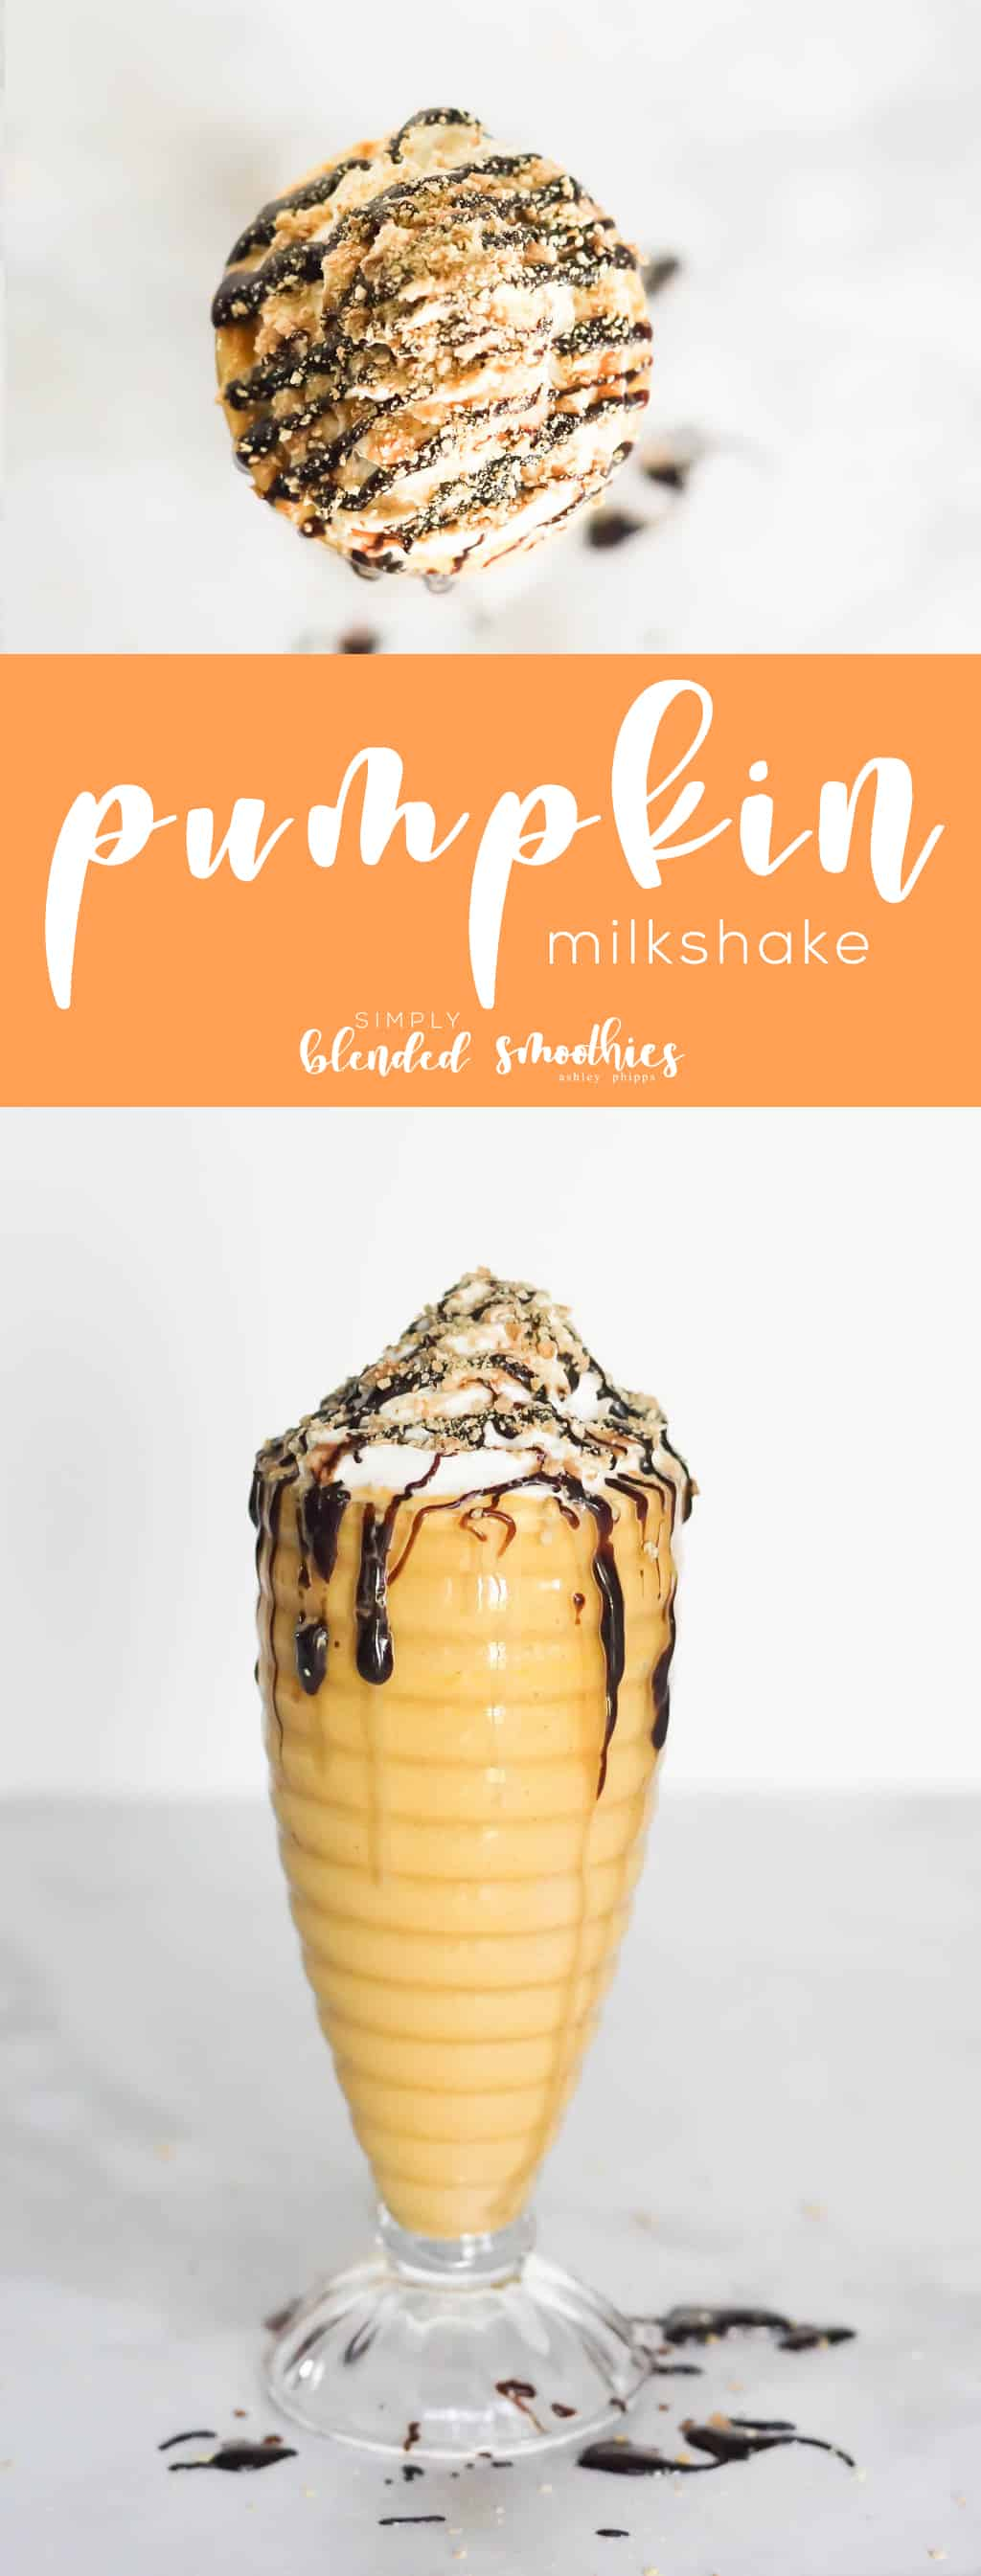 Pumpkin Milkshake Recipe - this pumpkin milkshake recipe is so delicious